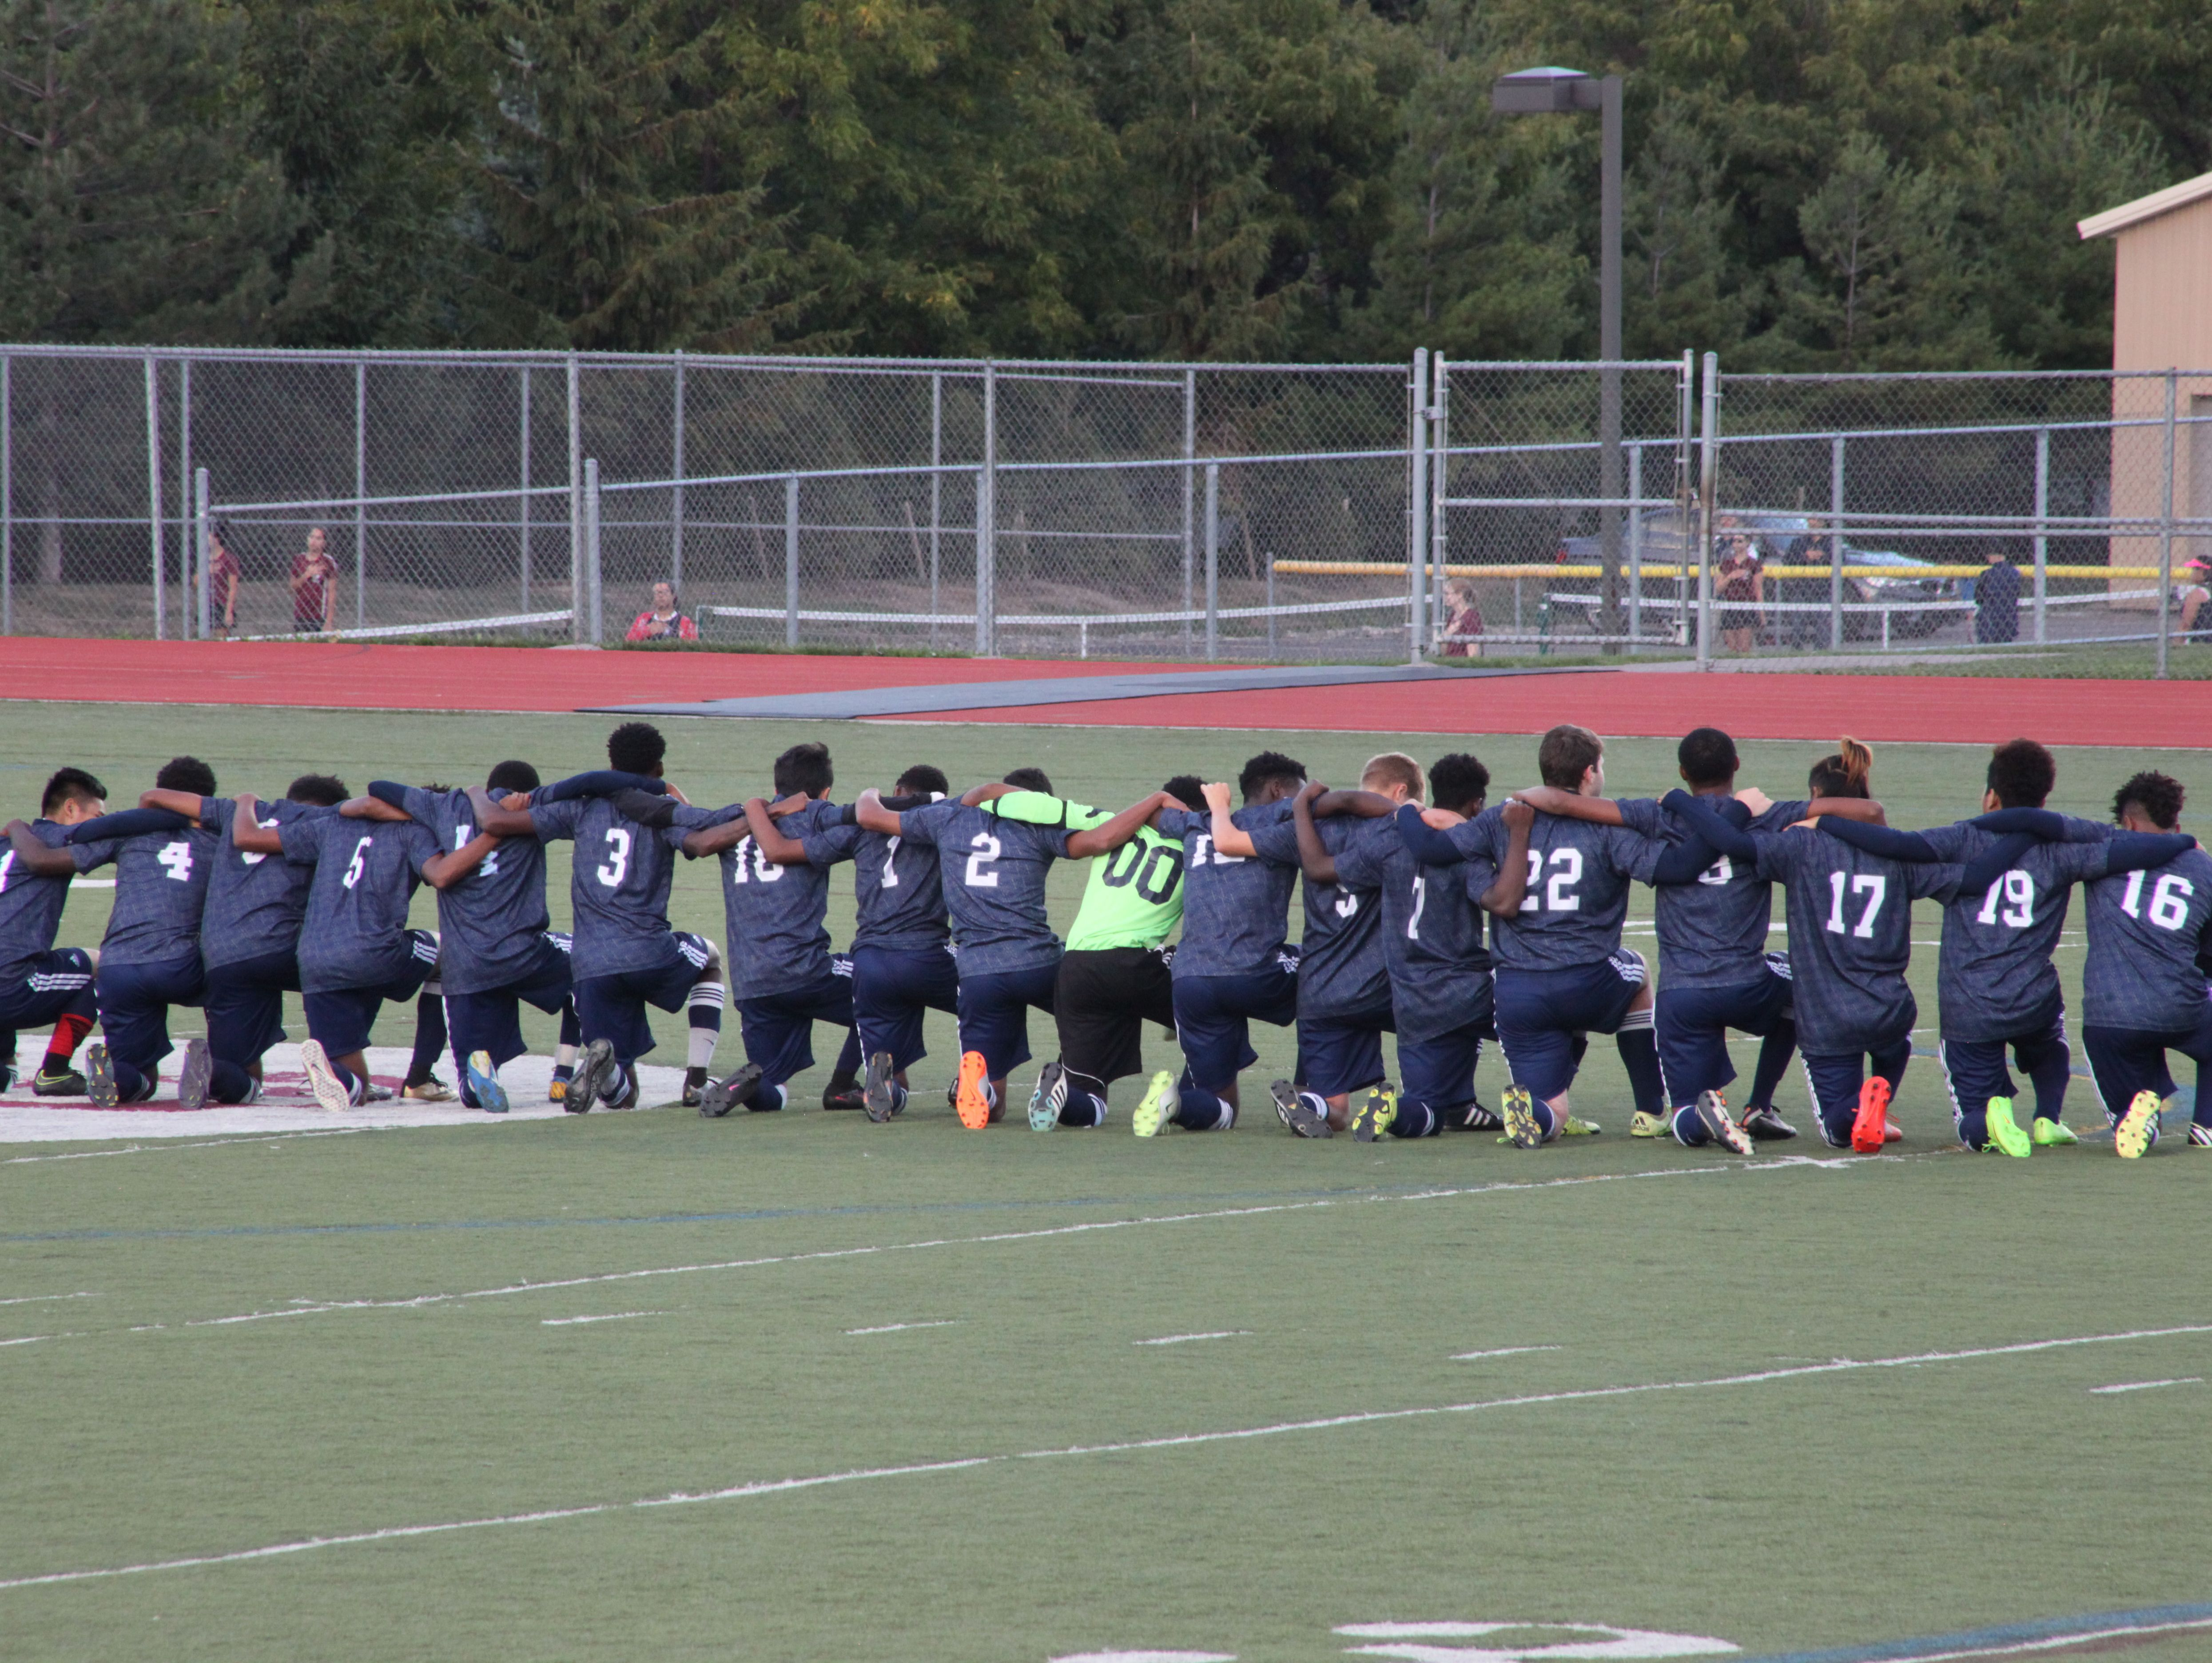 All 18 players for the World of Inquiry boys soccer team knelt during the anthem before Tuesday's match at Aquinas Institute.